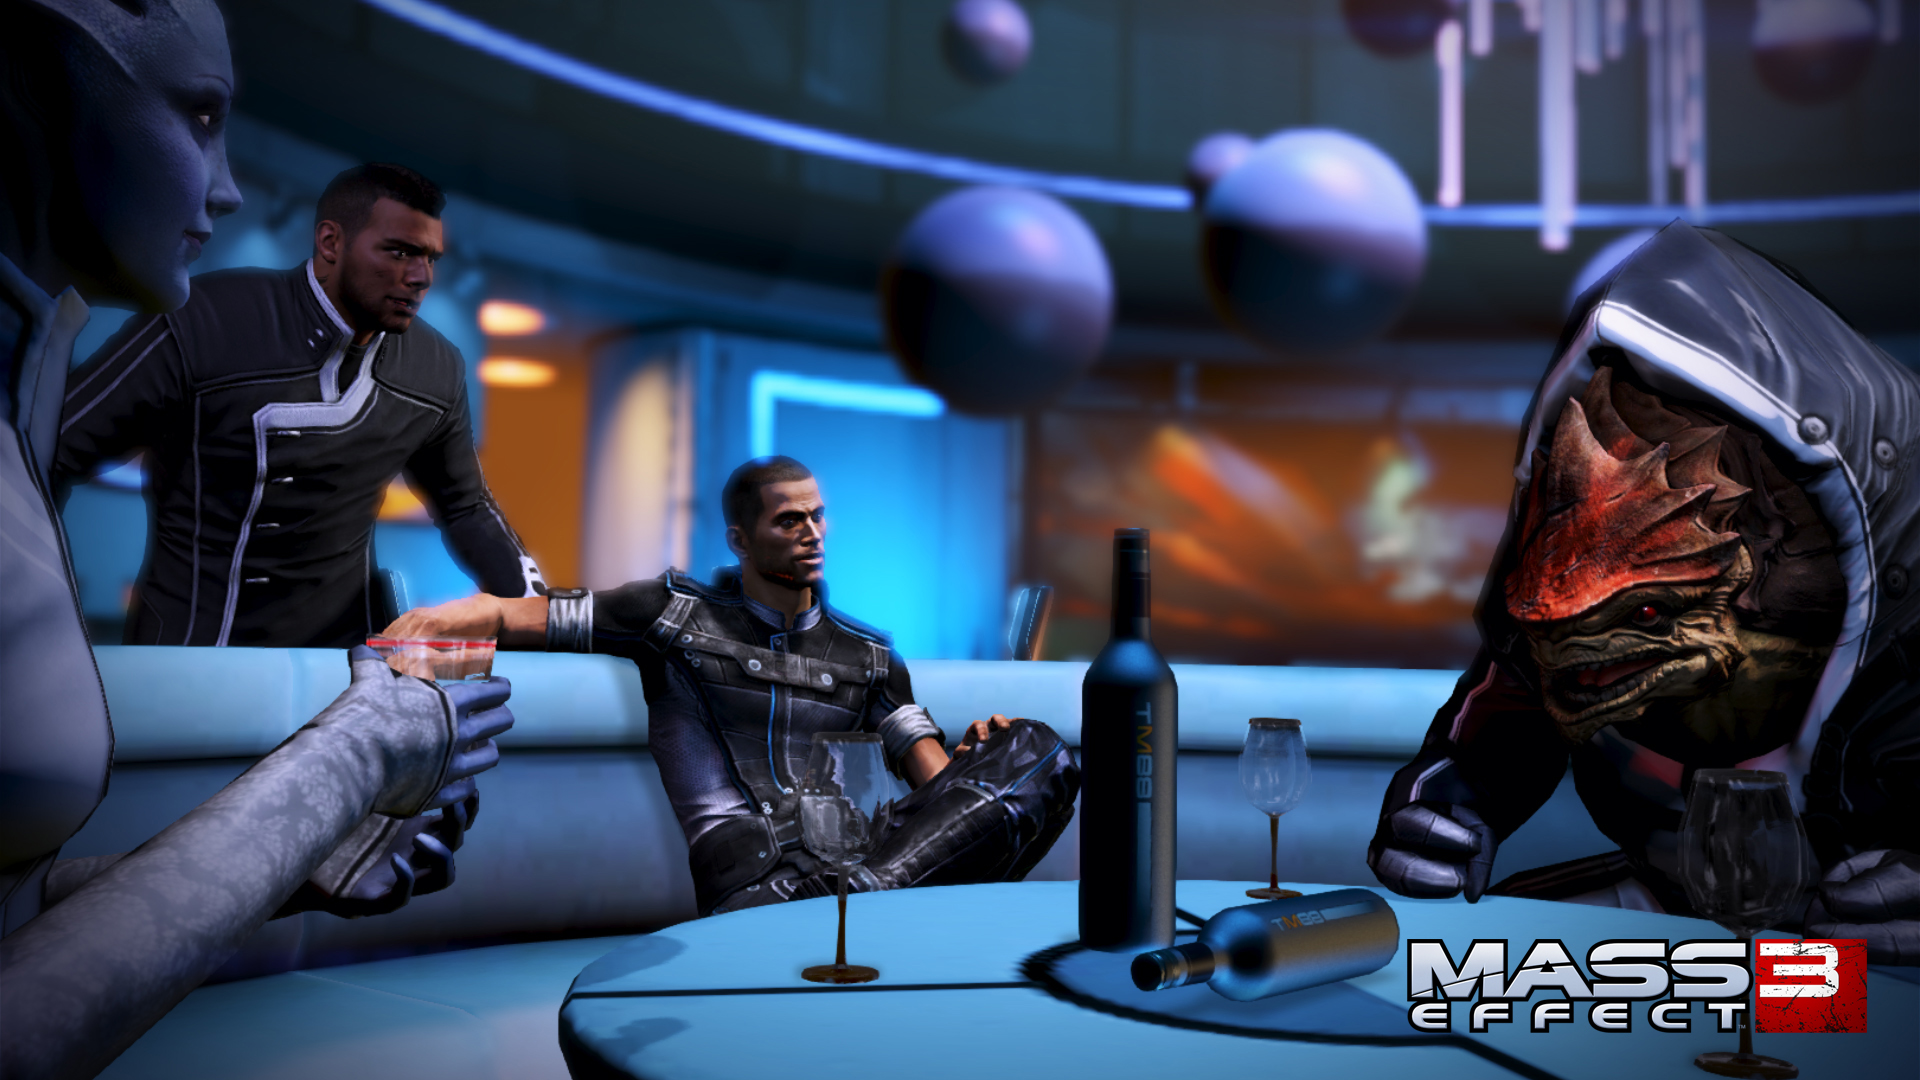 'Mass Effect 3: Citadel' trailer released, DLC split into two downloads on Xbox 360